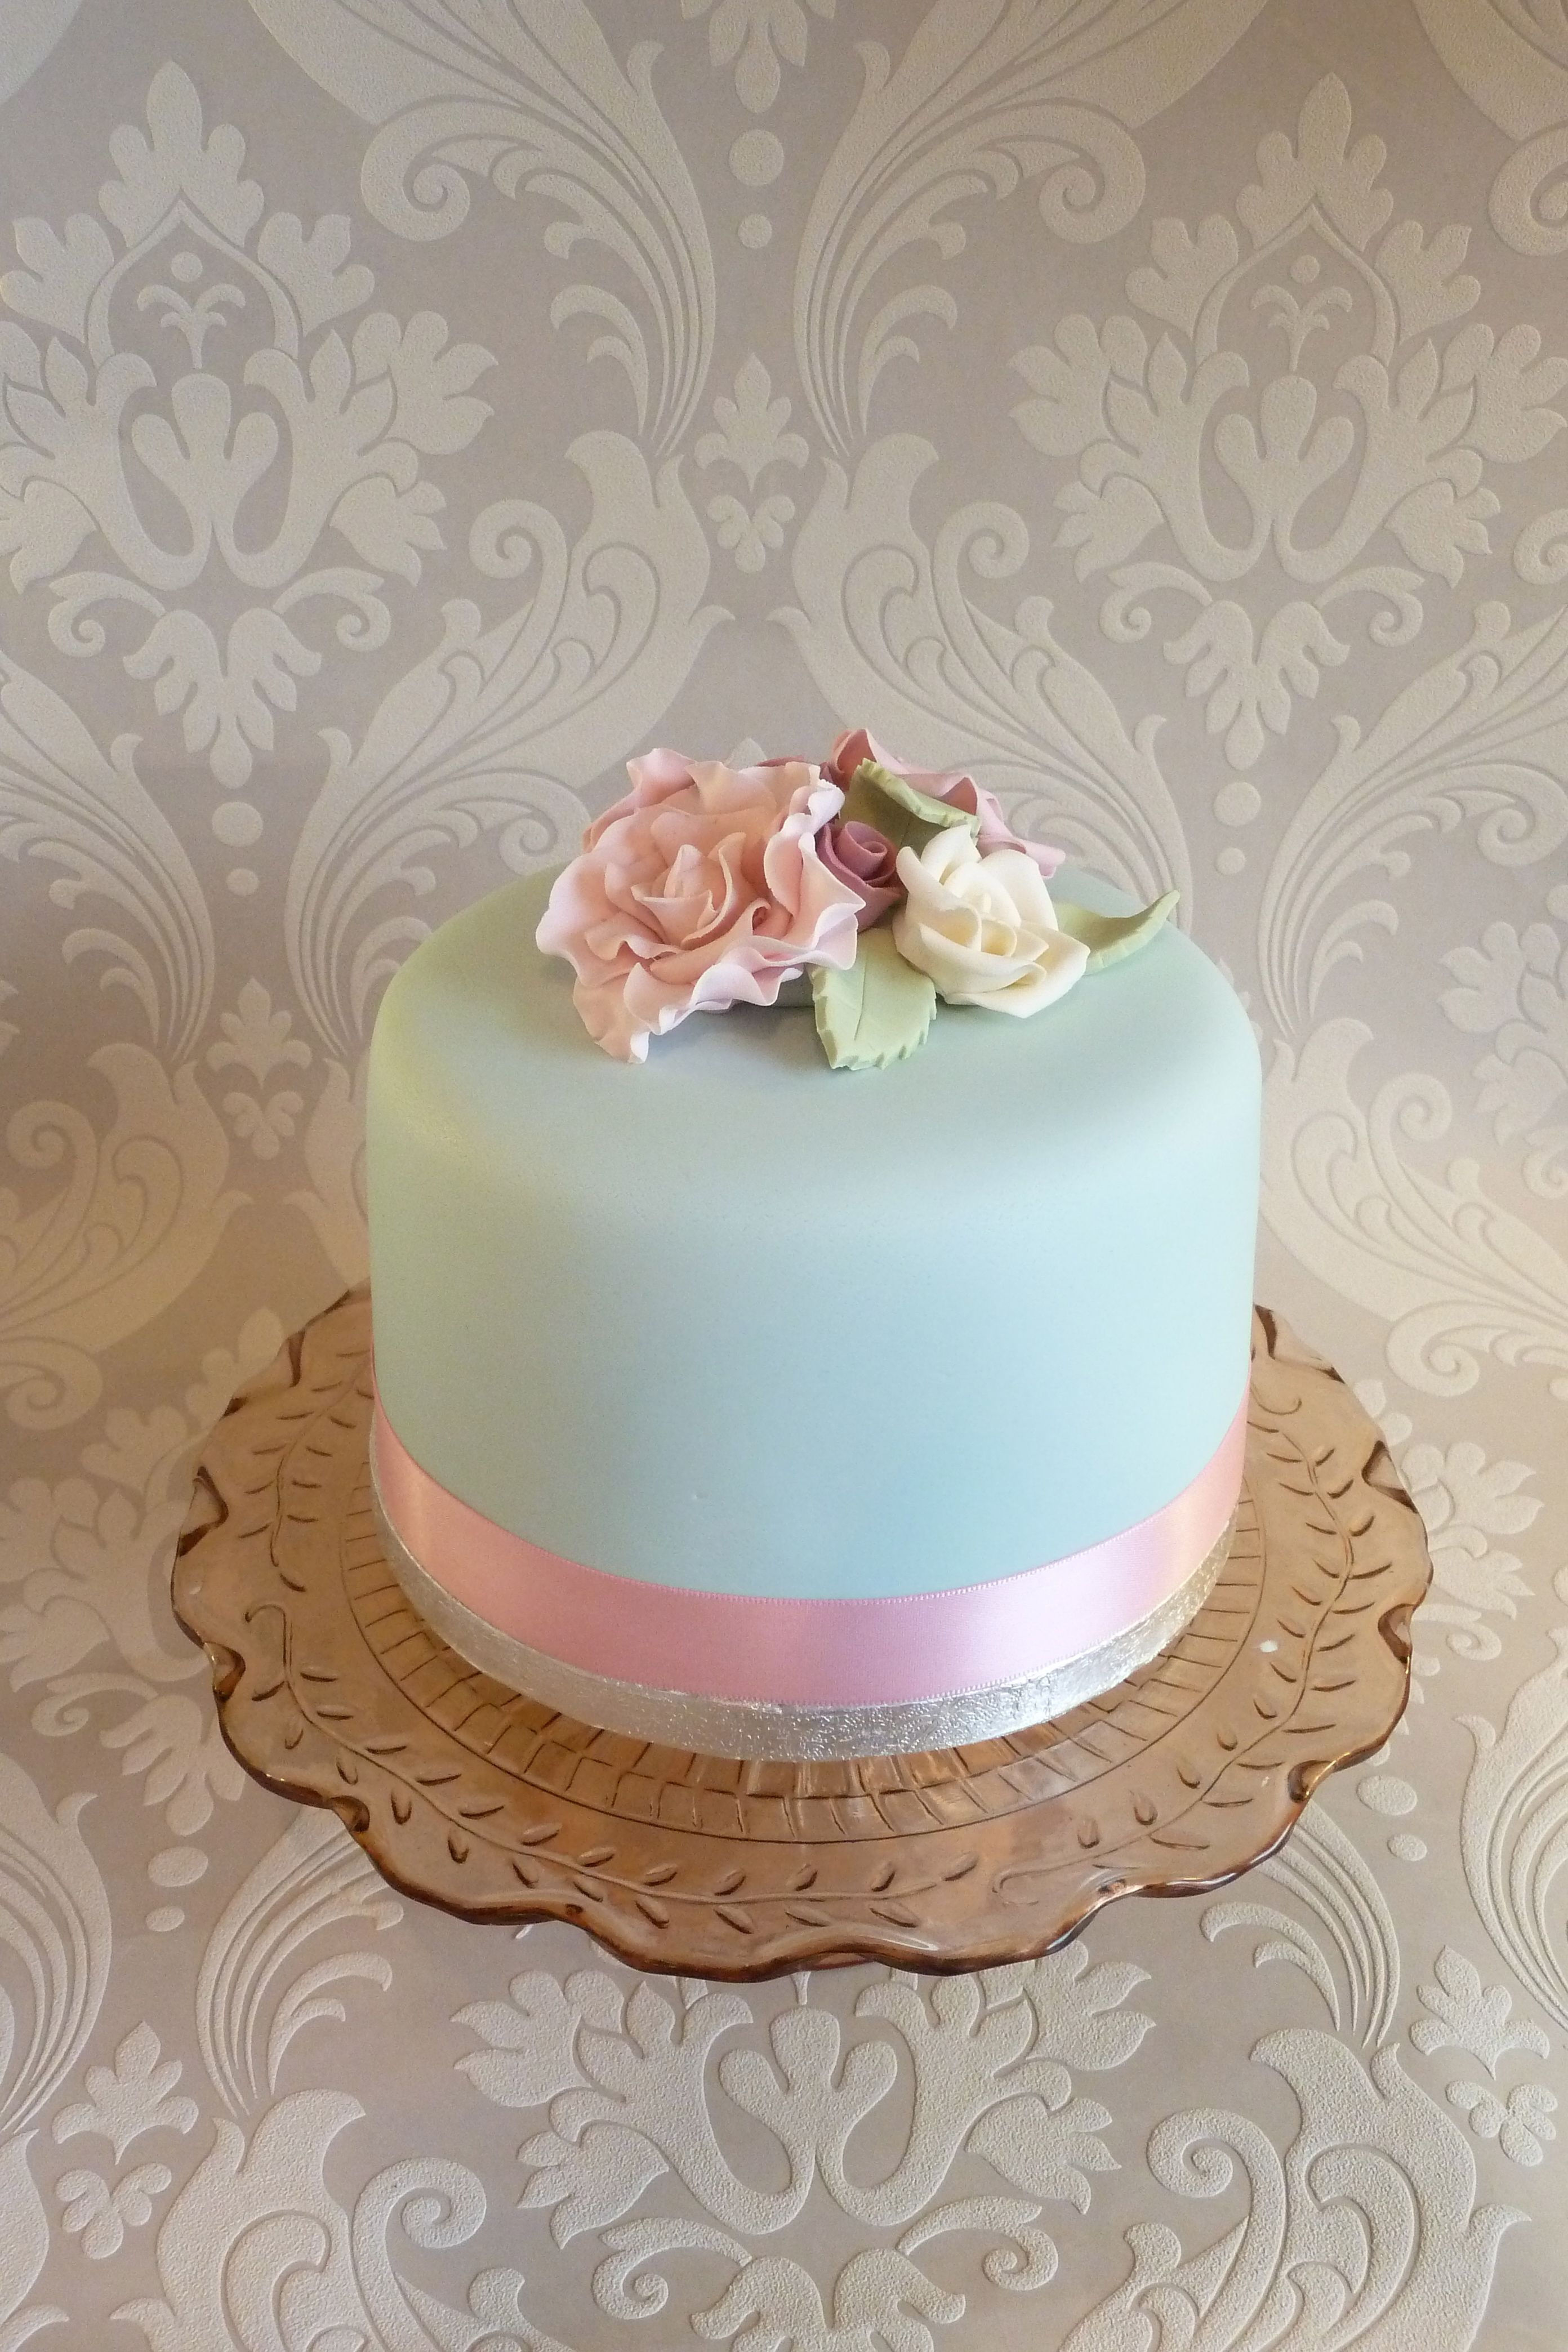 floral vintage inspired Single Tier Cake ♨ Cakes, Cakes